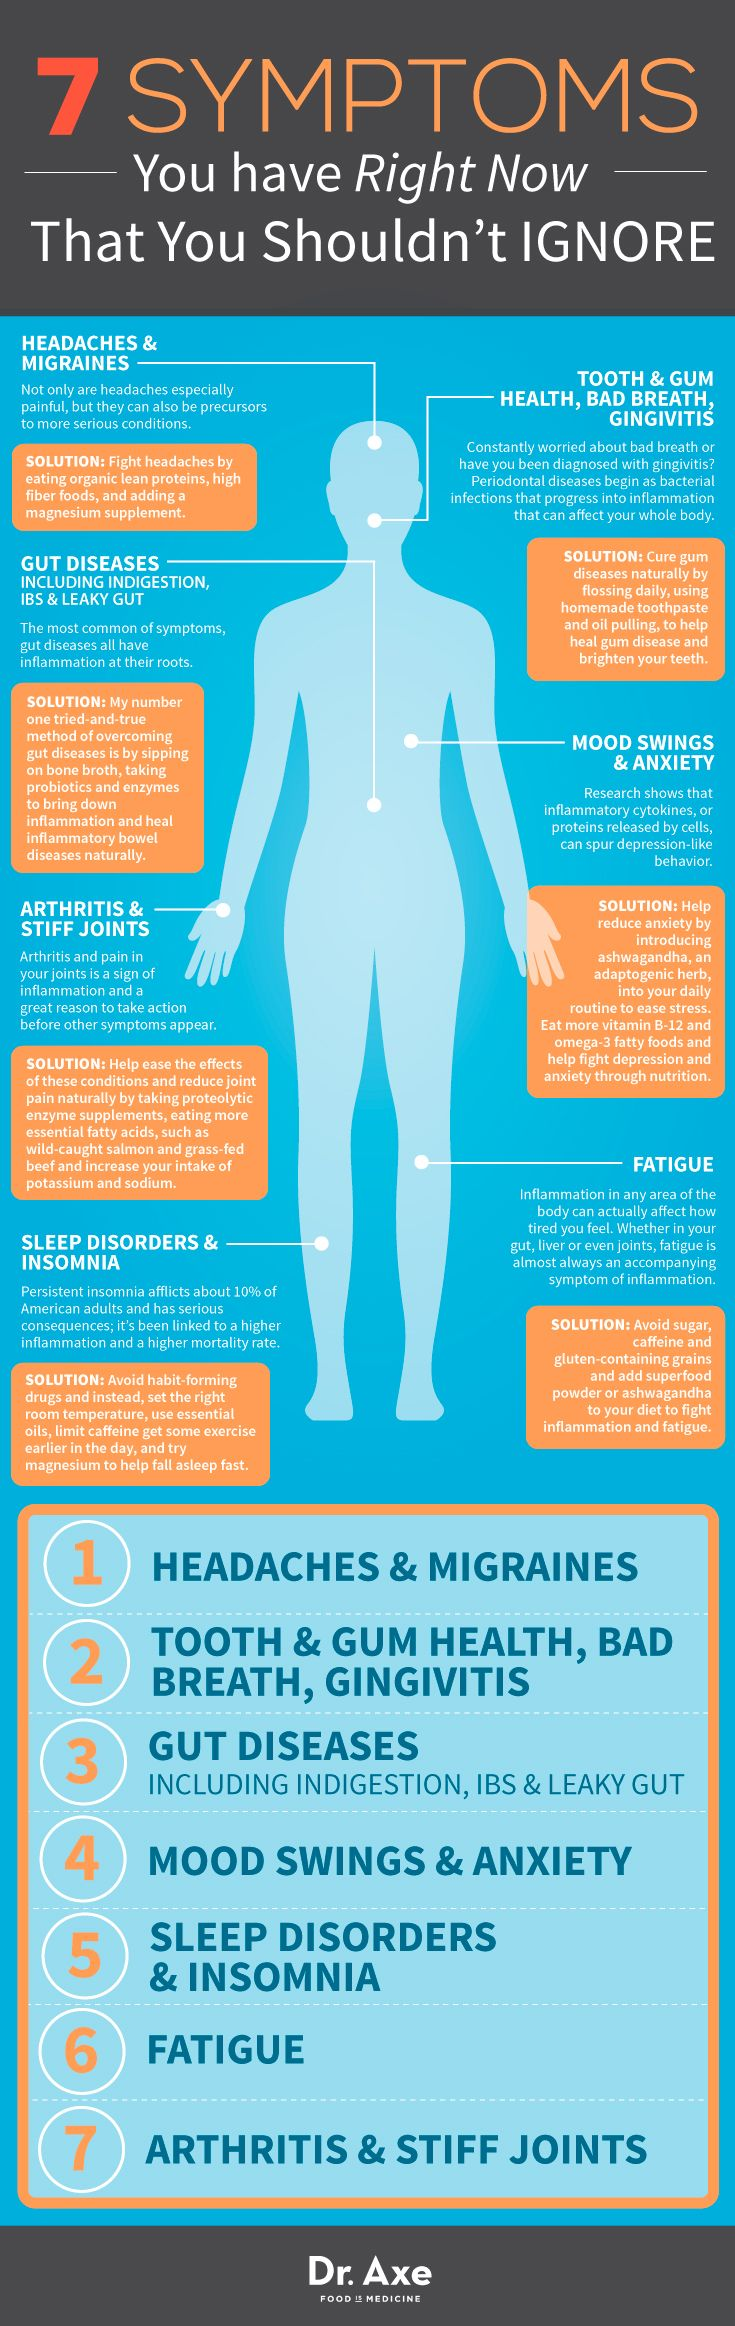 Migraine headaches, teeth, Gums, breath, gingivitis, leaky gut, indigestion, IBS, mood swings, anxiety, blues, depression, insomnia, fatigue, arthritis, stiffness - Symptoms Infographic